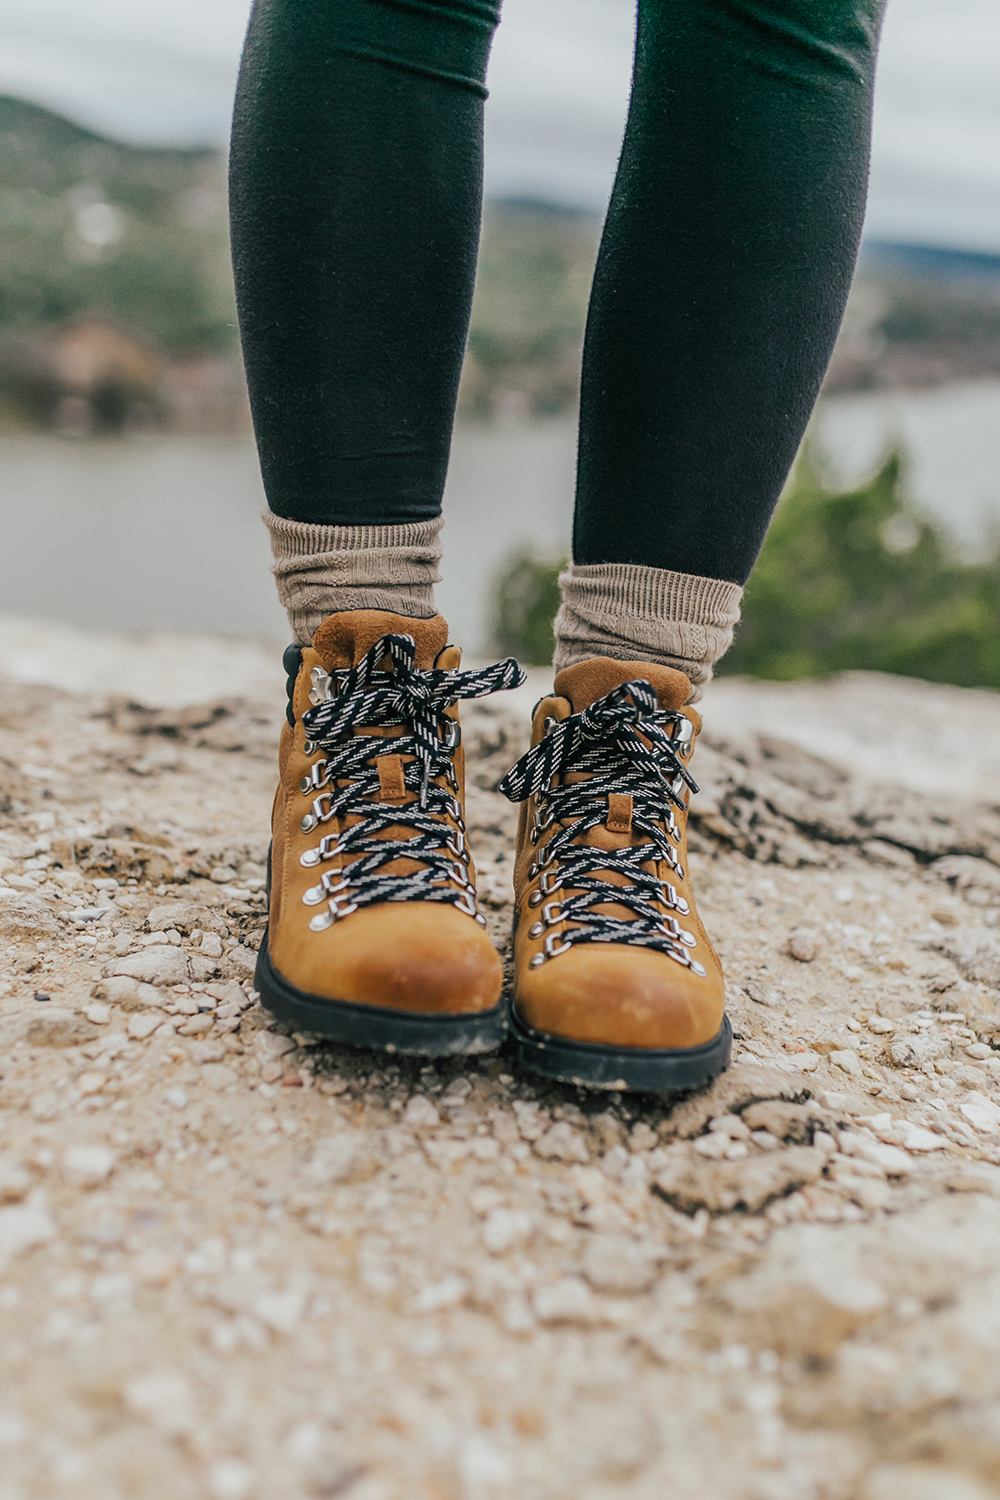 livvyland-blog-olivia-watson-austin-texas-fashion-lifestyle-blogger-sorel-ainsley-weatherproof-boots-winter-hike-mount-bonnell-